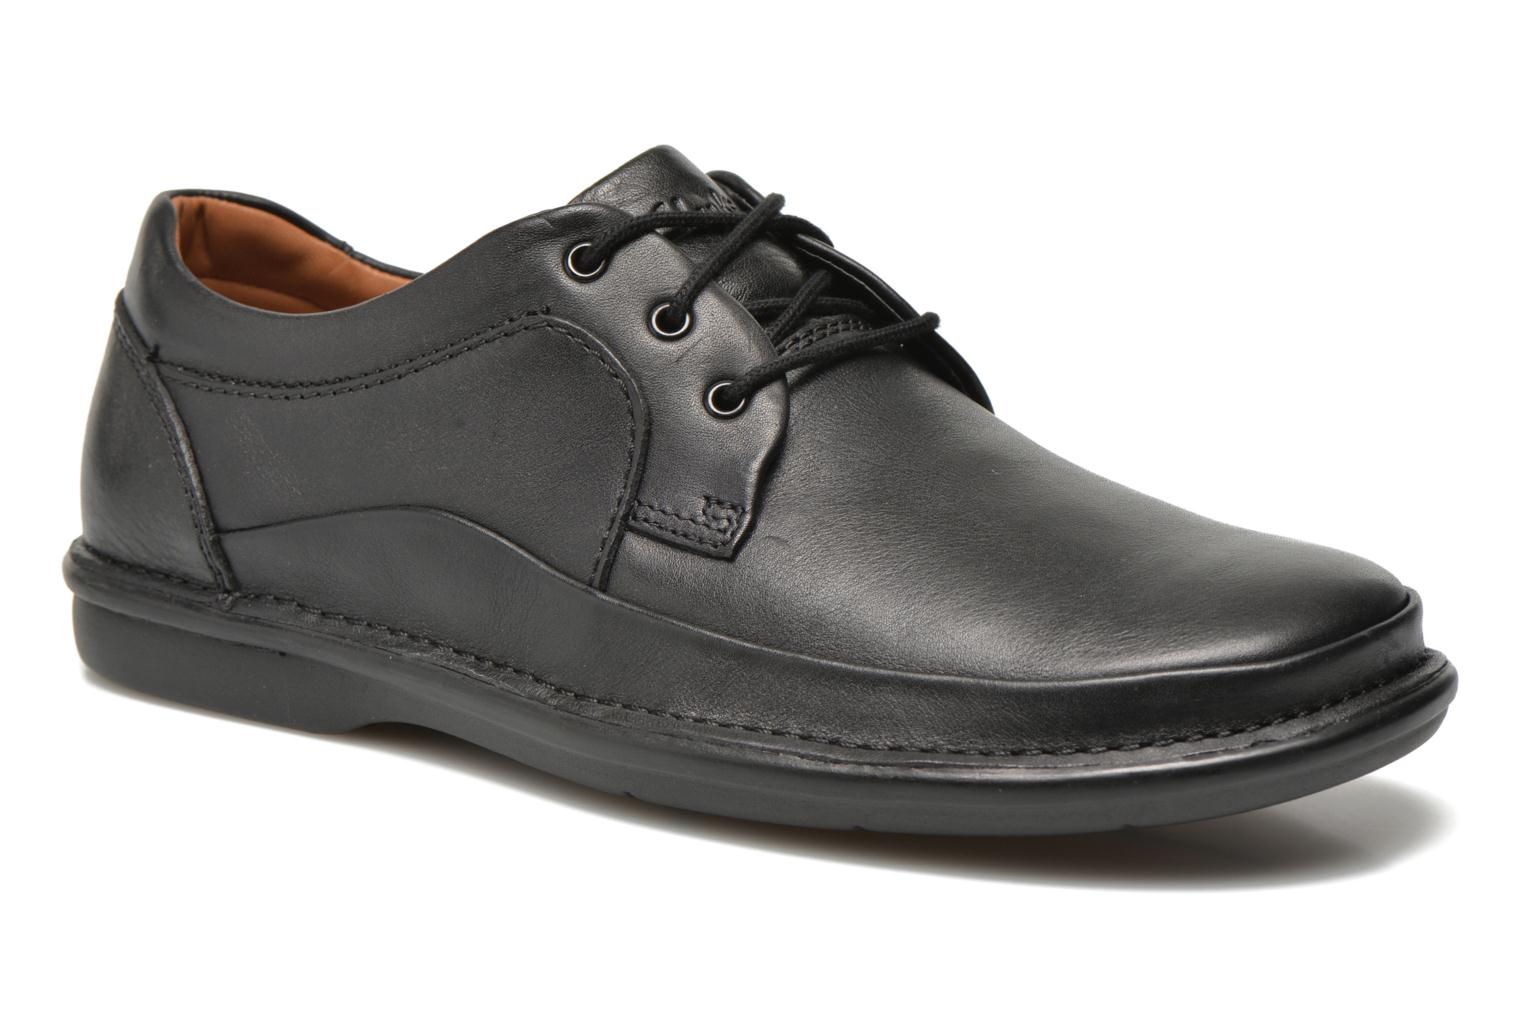 ButleighEdge Black leather